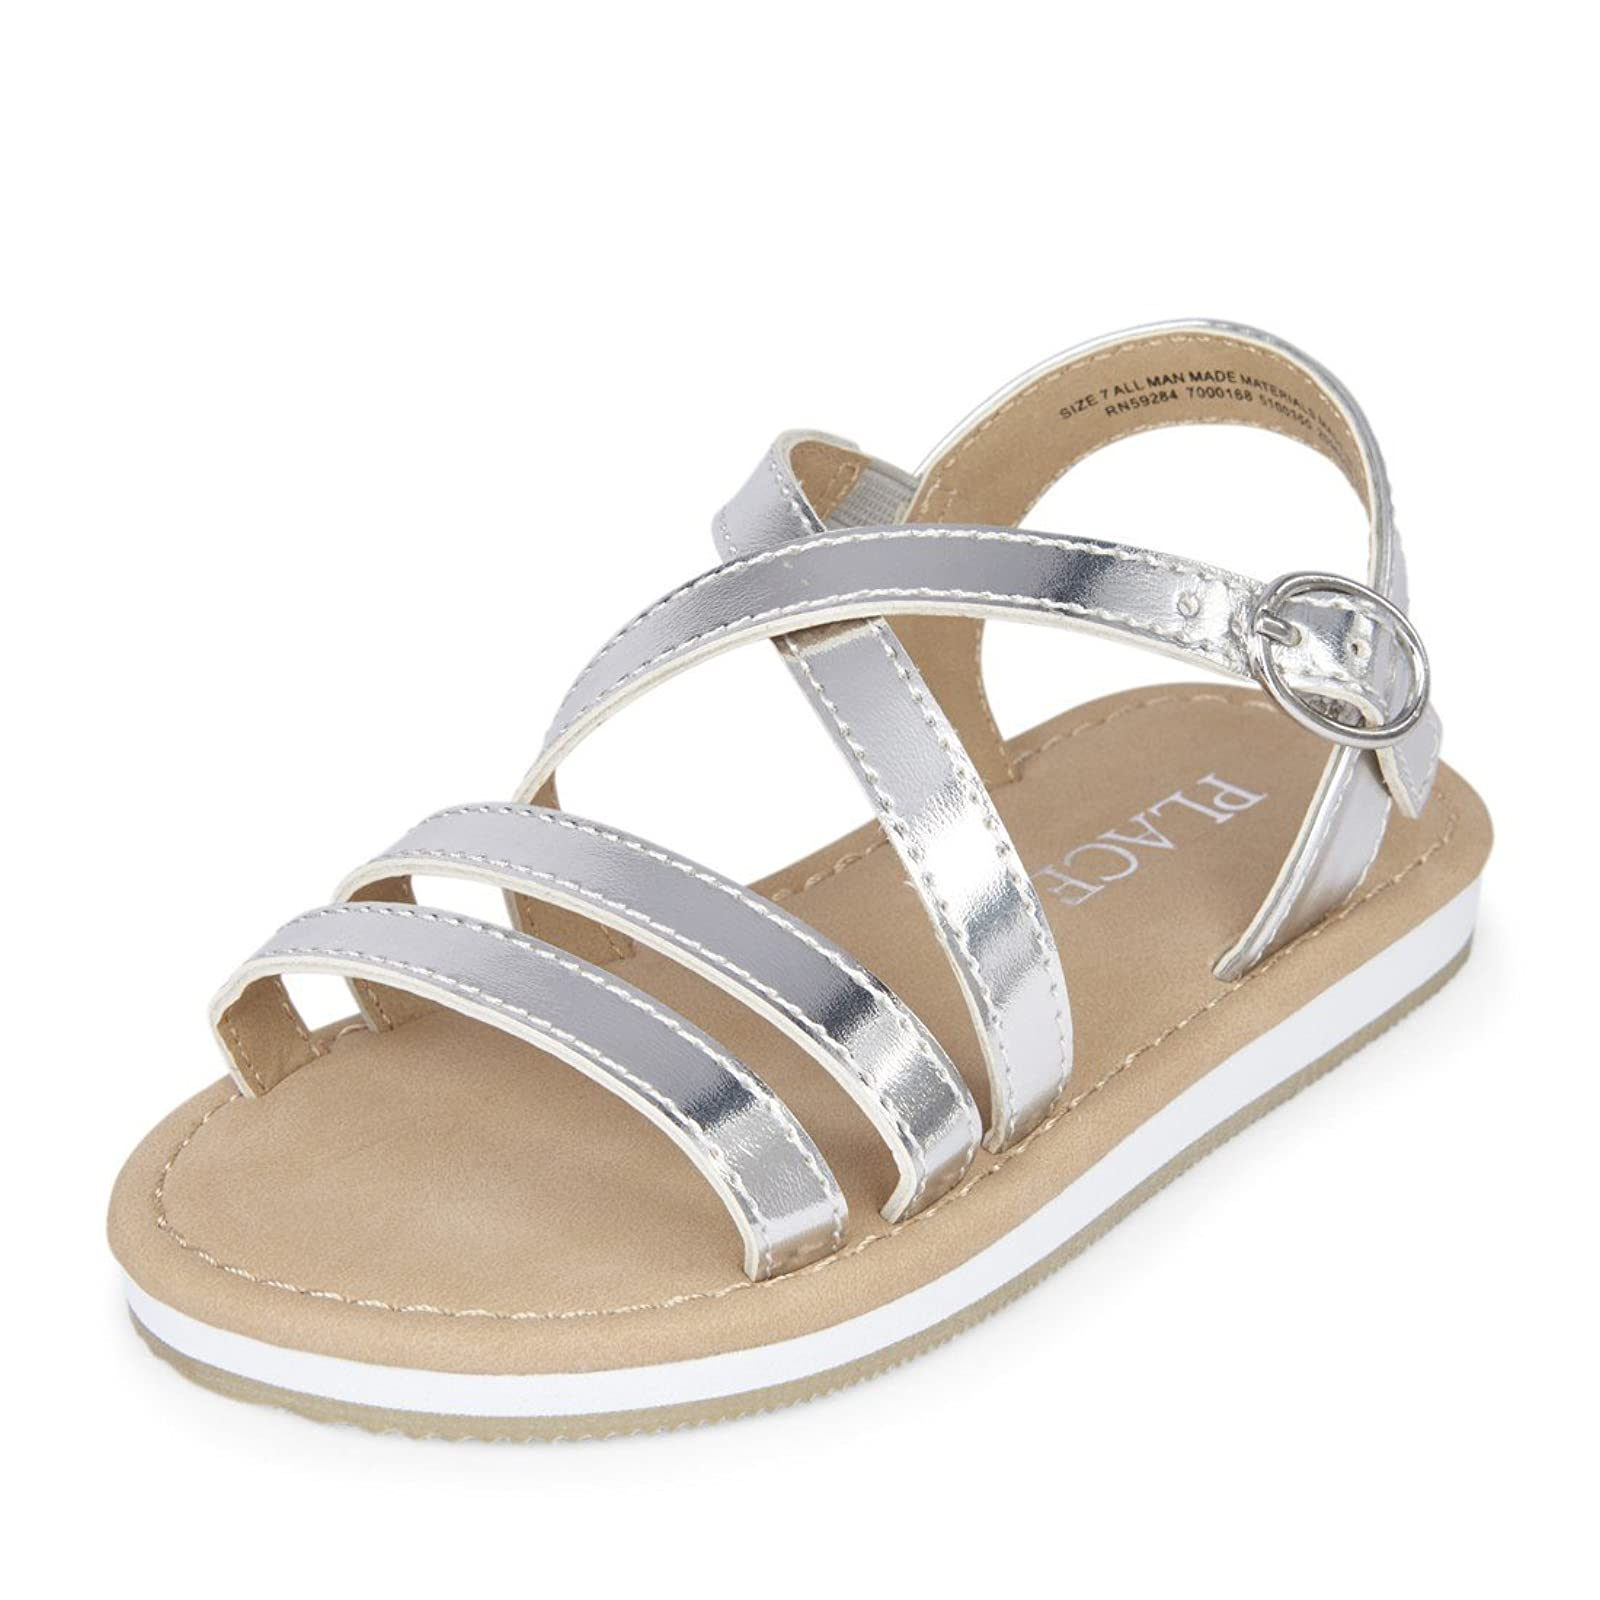 The Children's Place Girls' E TG 2096938001 Silver - 1